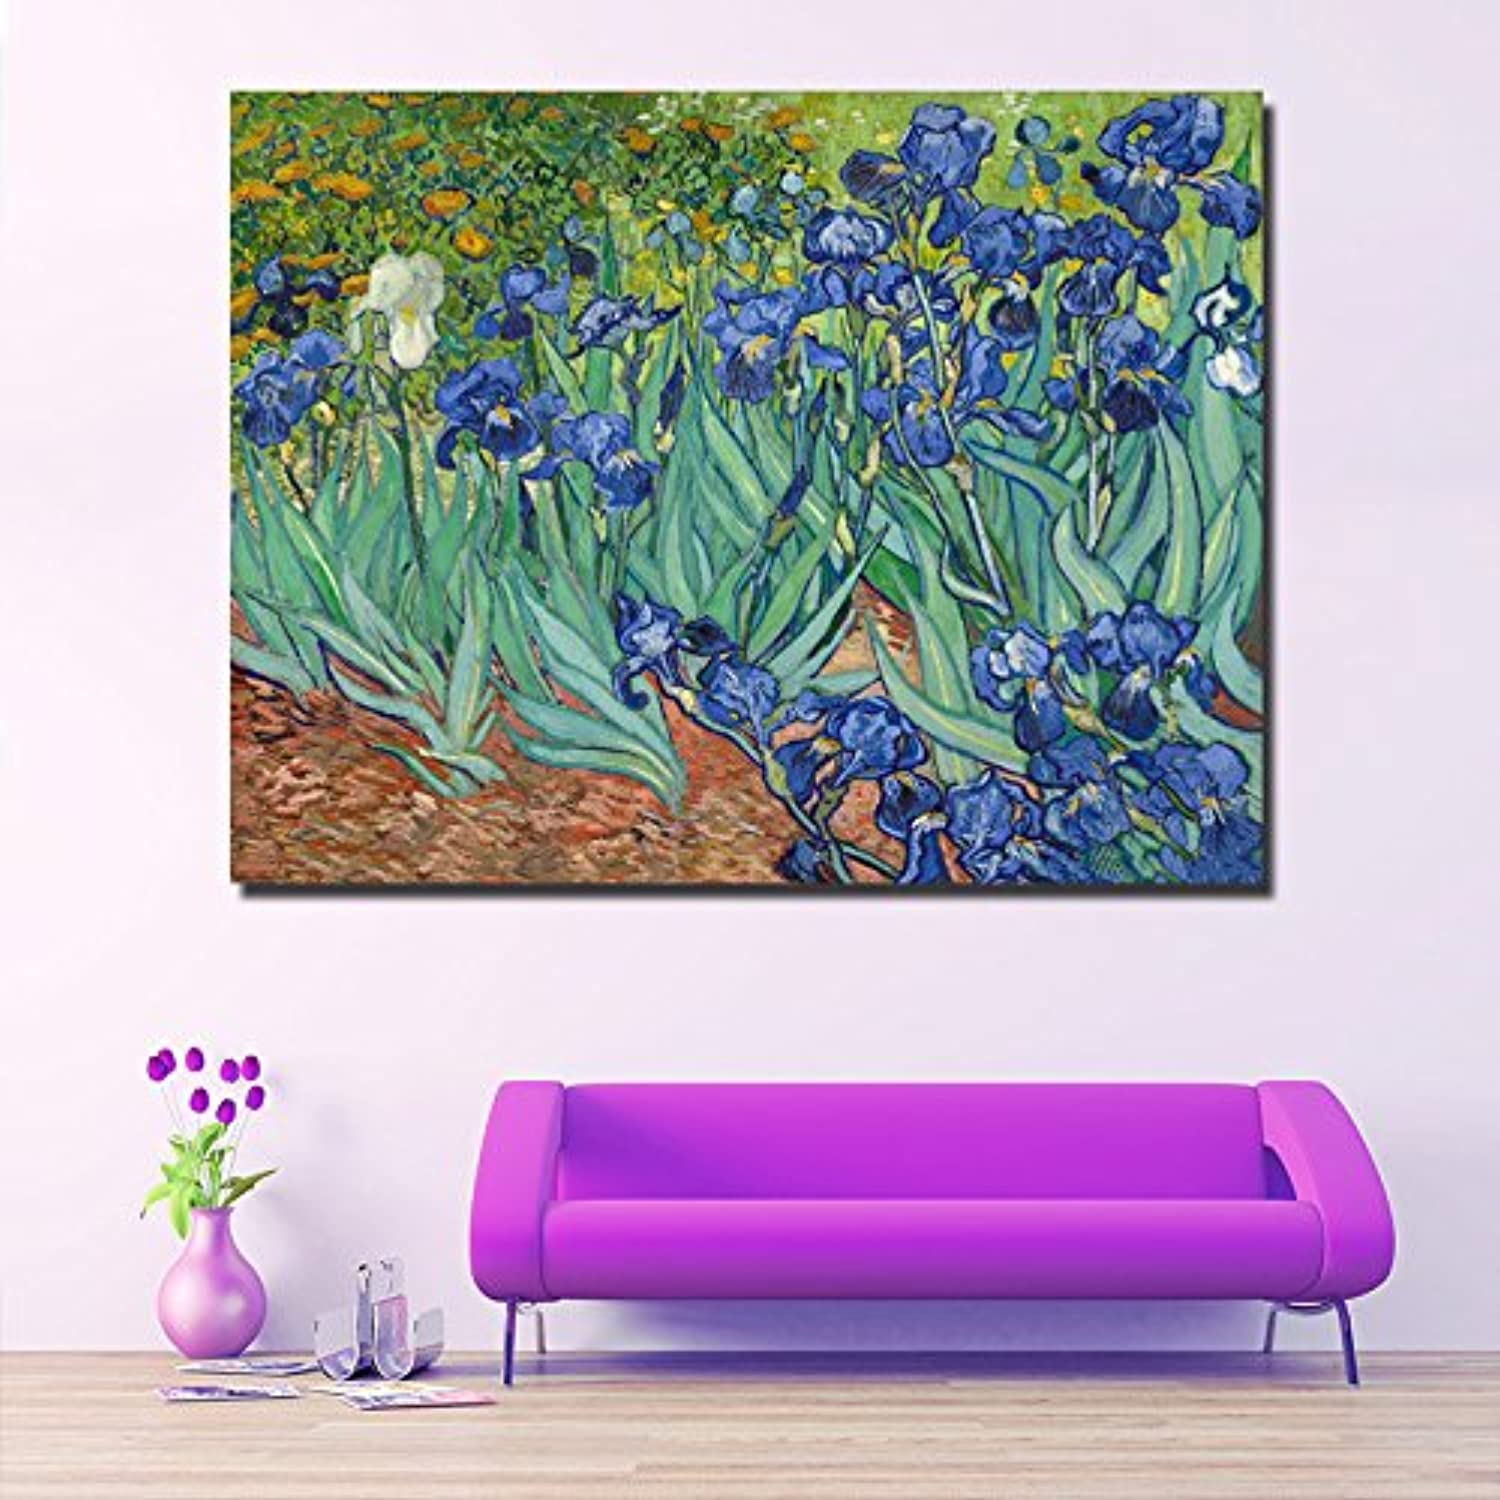 Farsla Iris 5D DIY Crystal Full Diamond Painting Van Gogh Flowers Round Number Kit Mosaics Rhinestone Painting for Wall Decoration 12X16inch